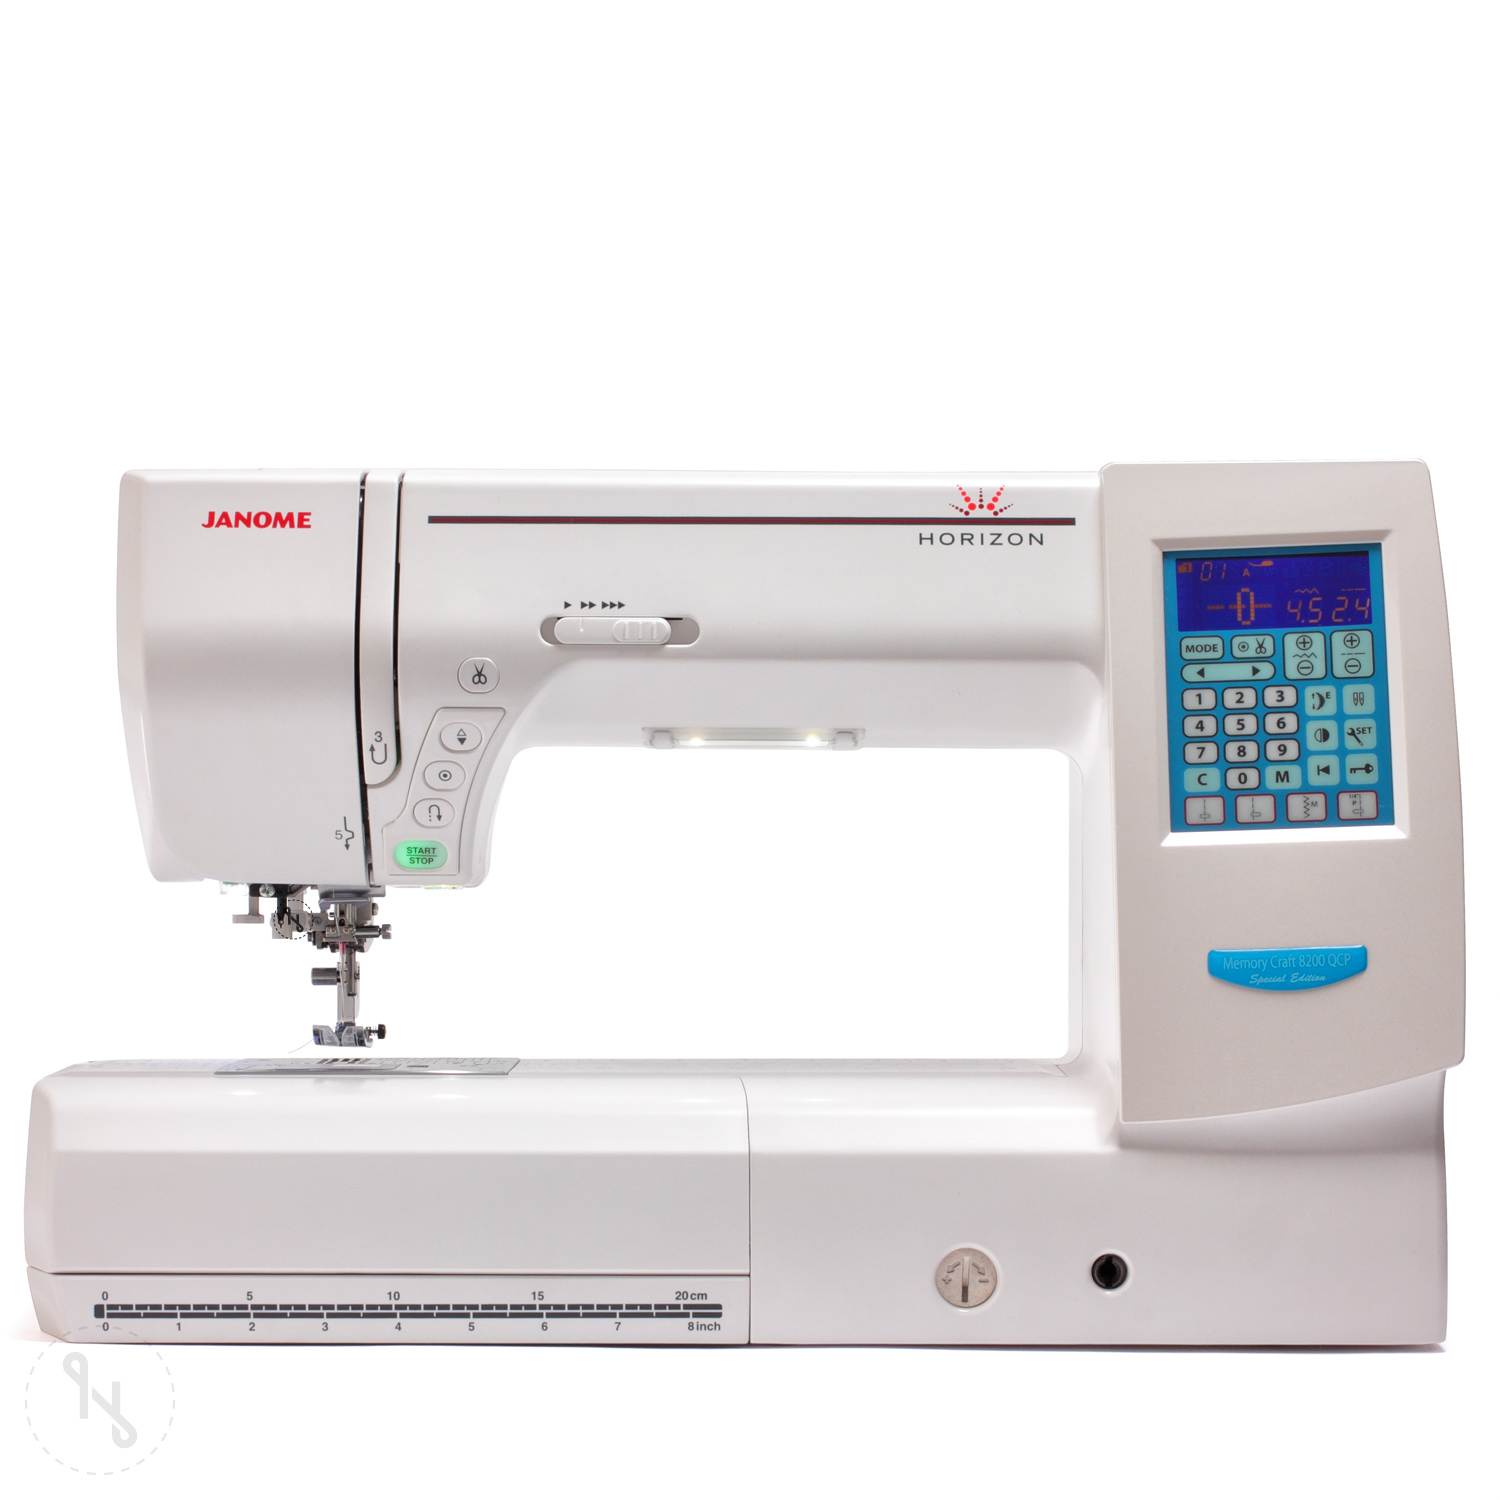 JANOME Horizon MC 8200 QCP Special Edition weiß